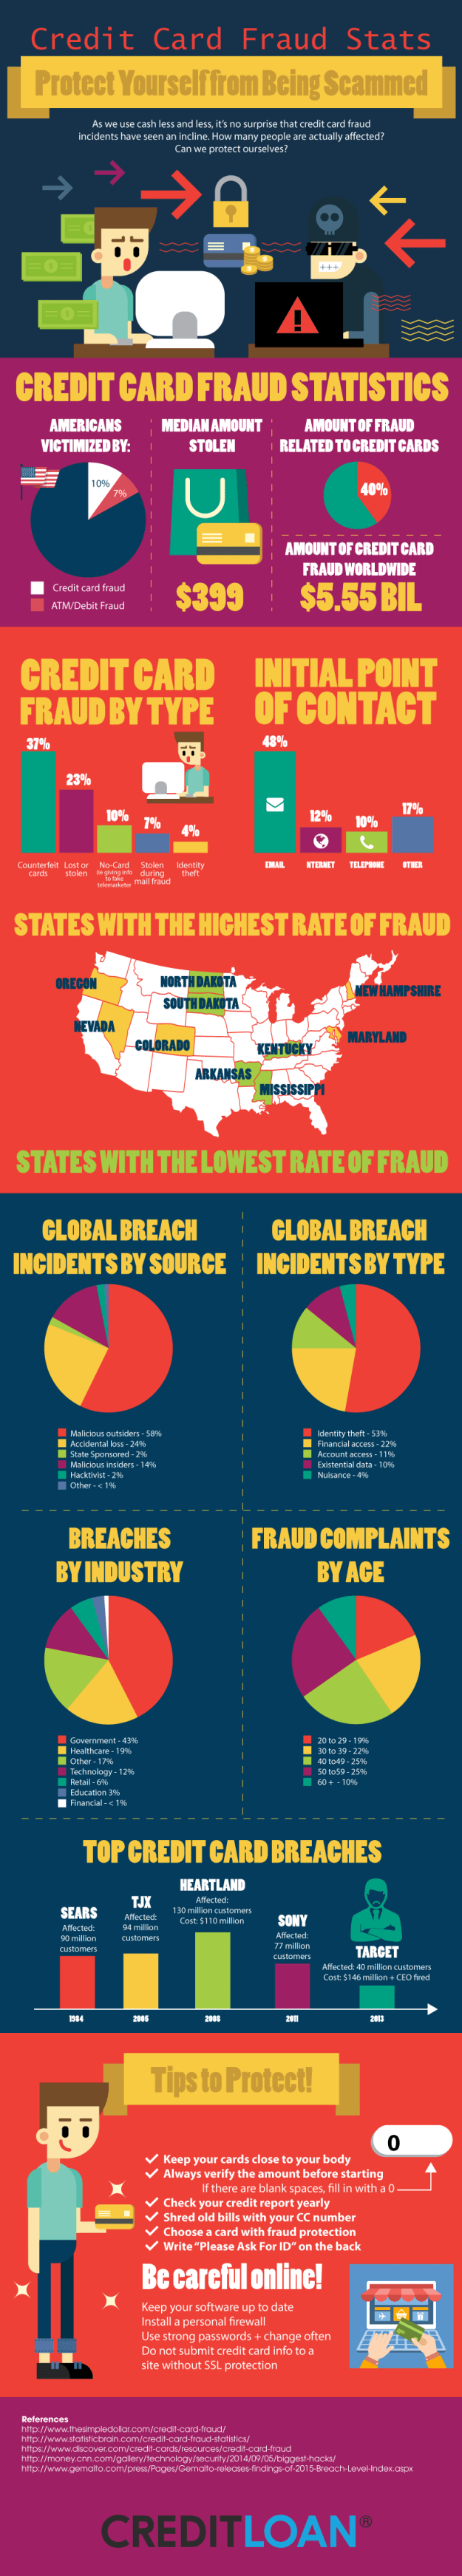 Credit Card Fraud Stats - Protect Yourself from Being Scammed